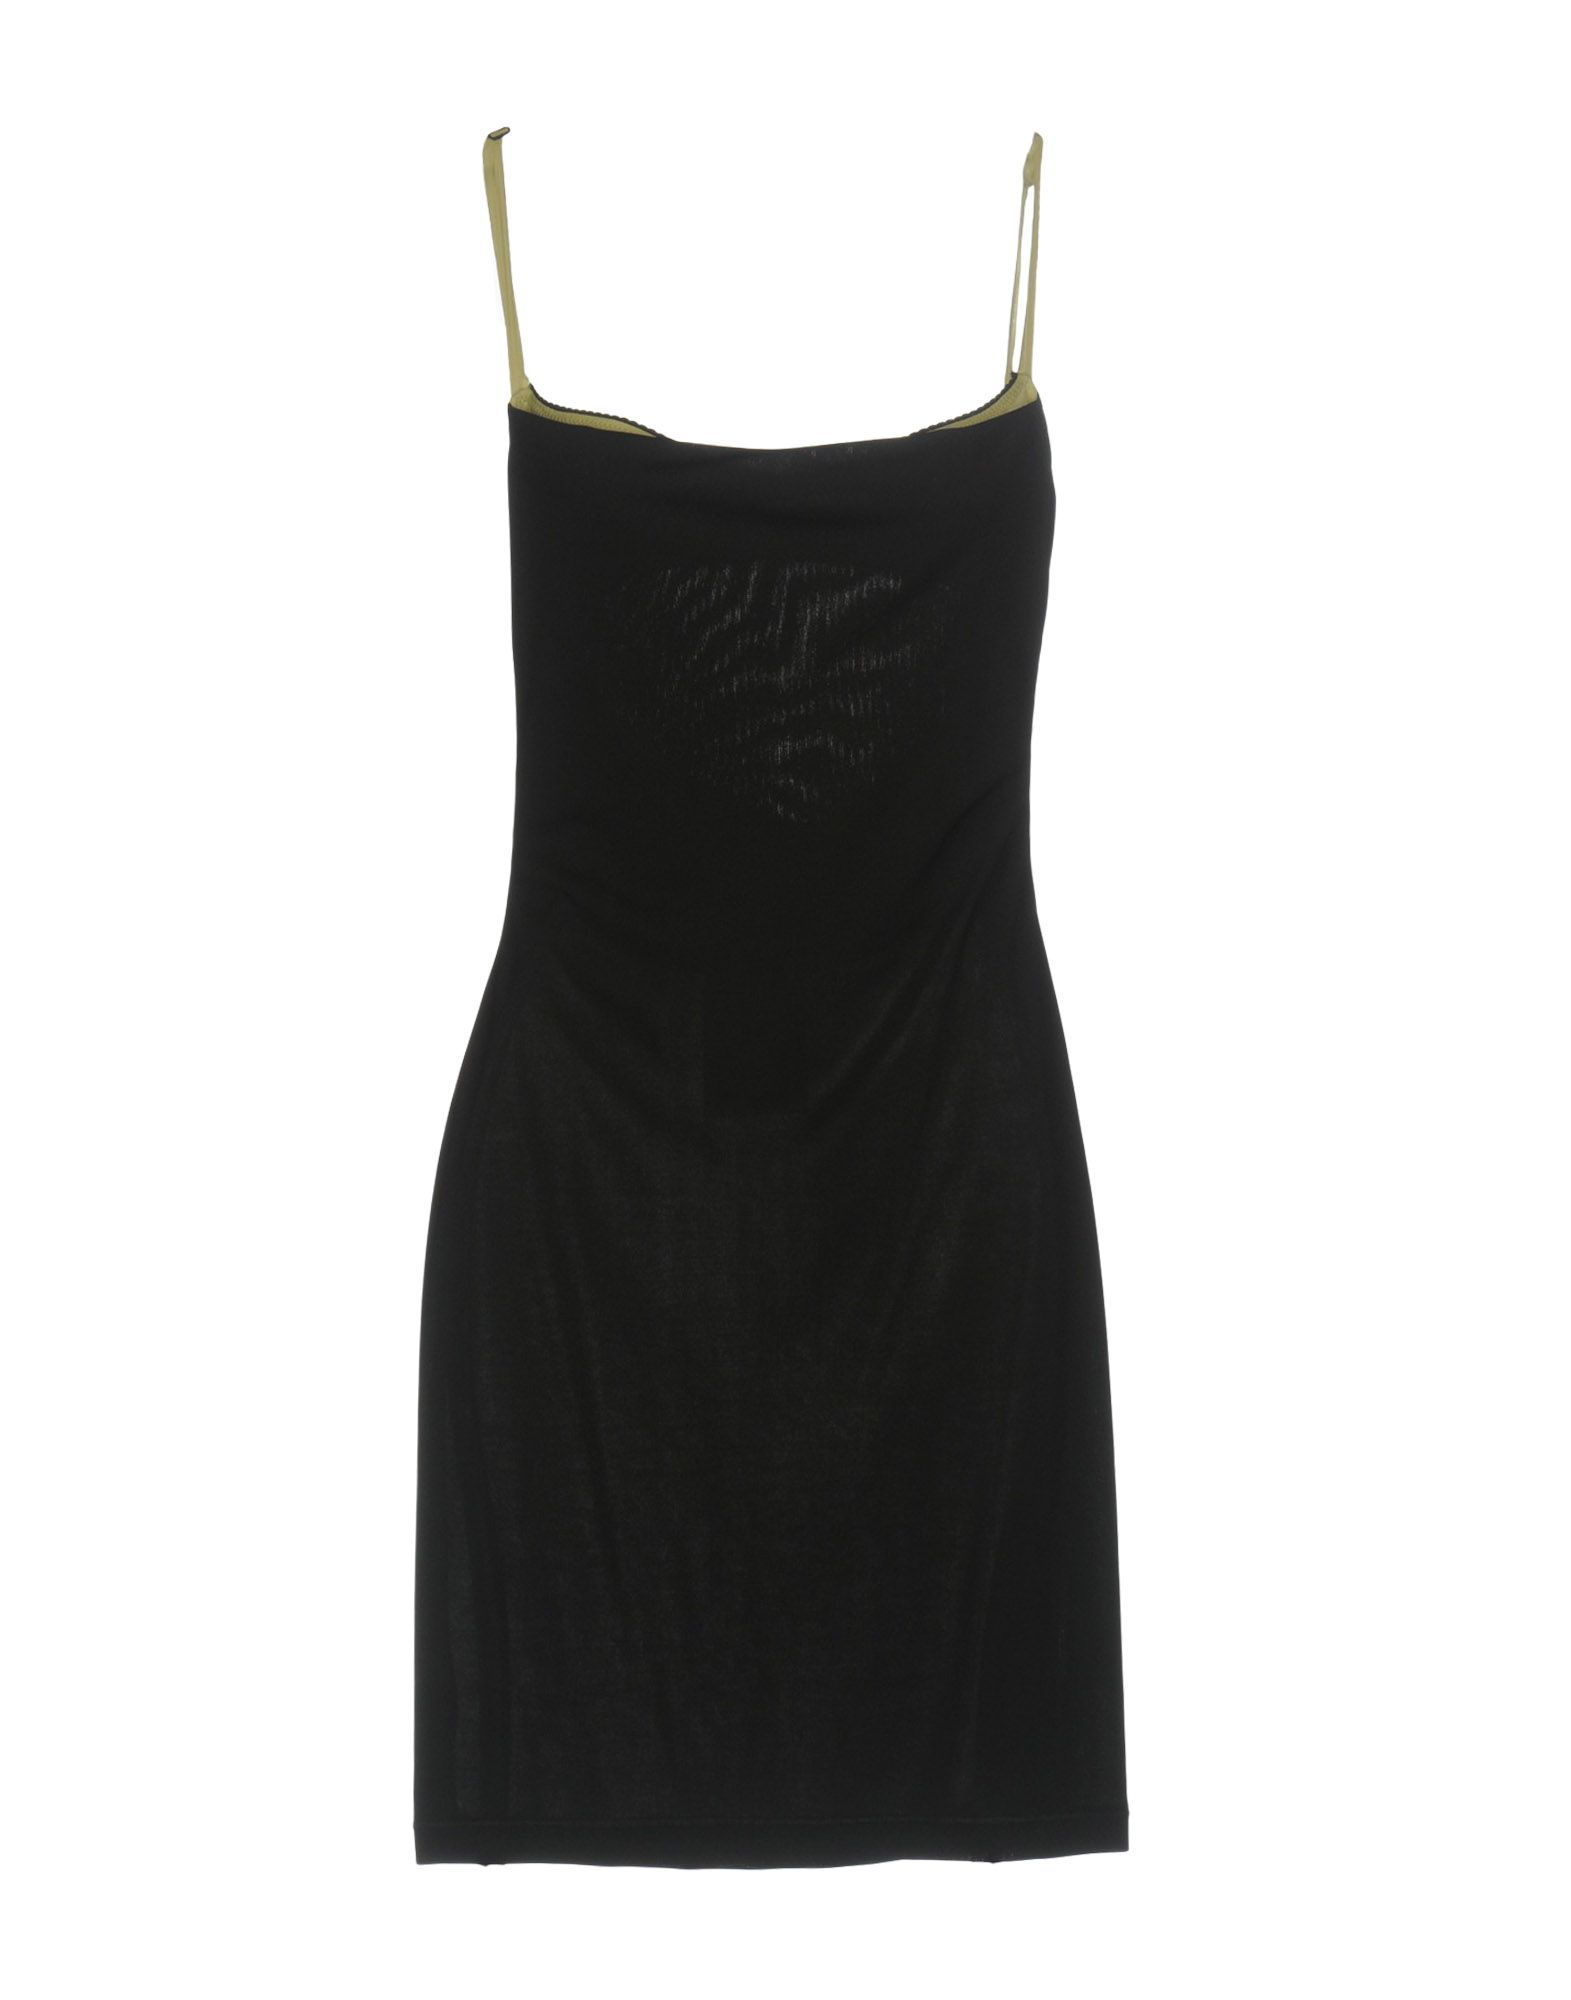 John Richmond Black Crepe Slip Dress